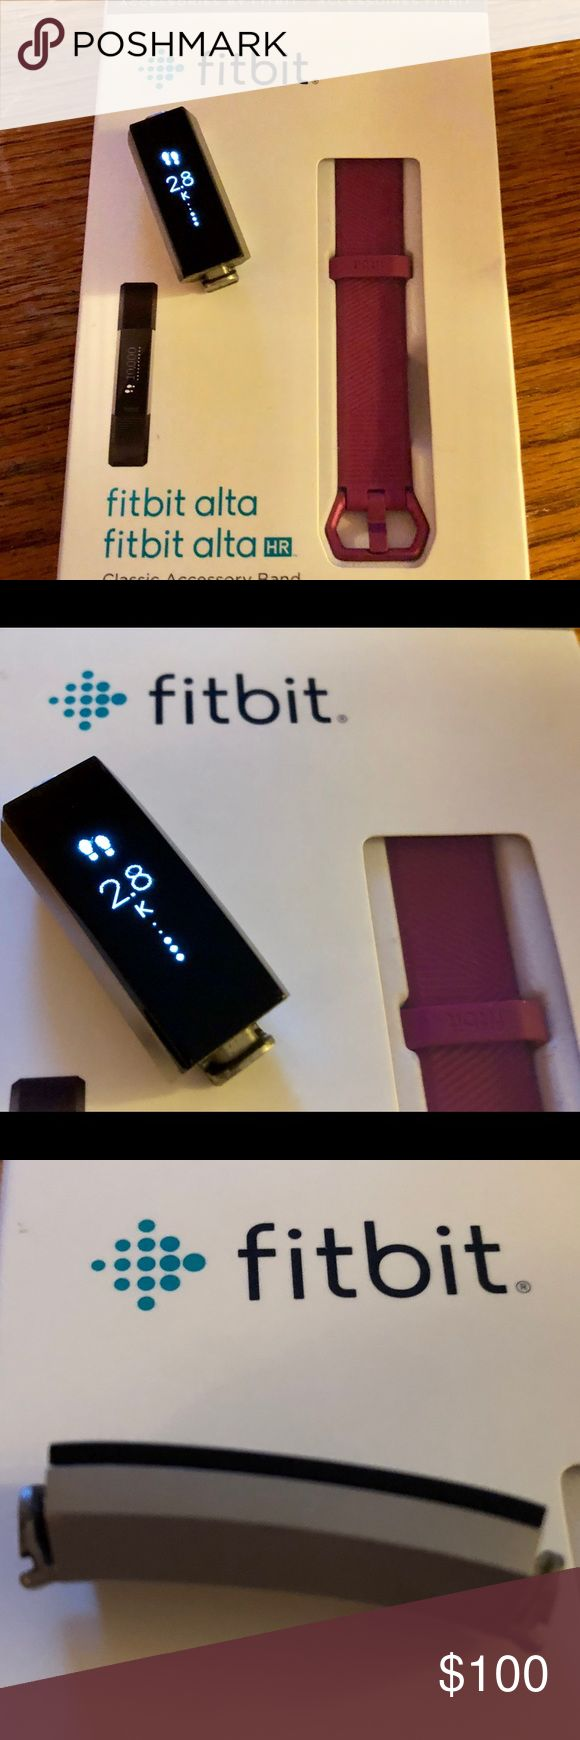 🌟Fitbit Alta-  (LARGE)⌚️ Fitbit Alta pebble in EUC. Wristband is brand new. Tracker works perfectly fine. No damage or major visible scratches. Minor signs of wear on tracker pebble only.  This Fitbit does NOT have the HR feature.  What's Included:  •Fitbit Alta tracker •Alta classic wristband (Brand new) •Charging cable •Wireless sync dongle   Syncs with Mac OS X 10.6 and up, iPhone 4S and later, iPad 3 gen. and later, Android 4.4 and later, and Windows 10 devices. Fitbit Other